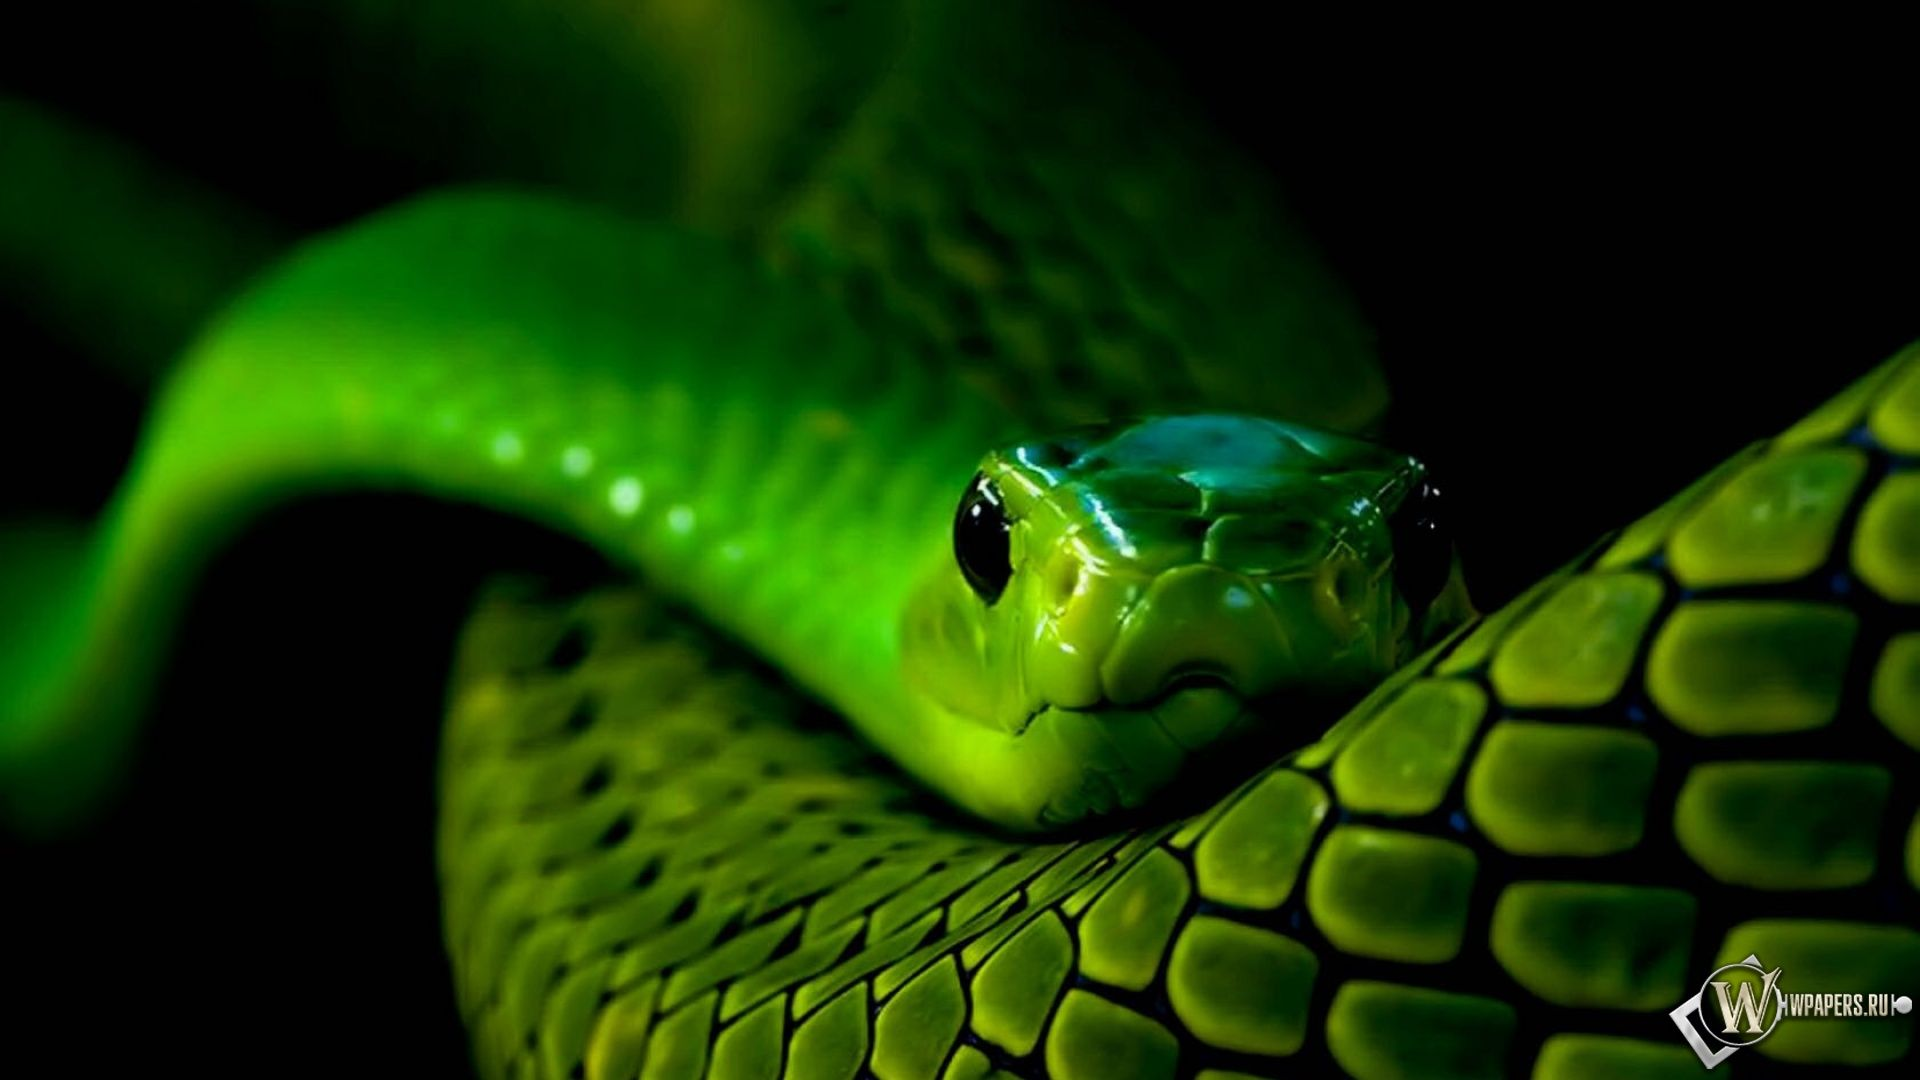 Wallpapers Neon Snake D Hd 1680x1050 246475 neon snake 1920x1080